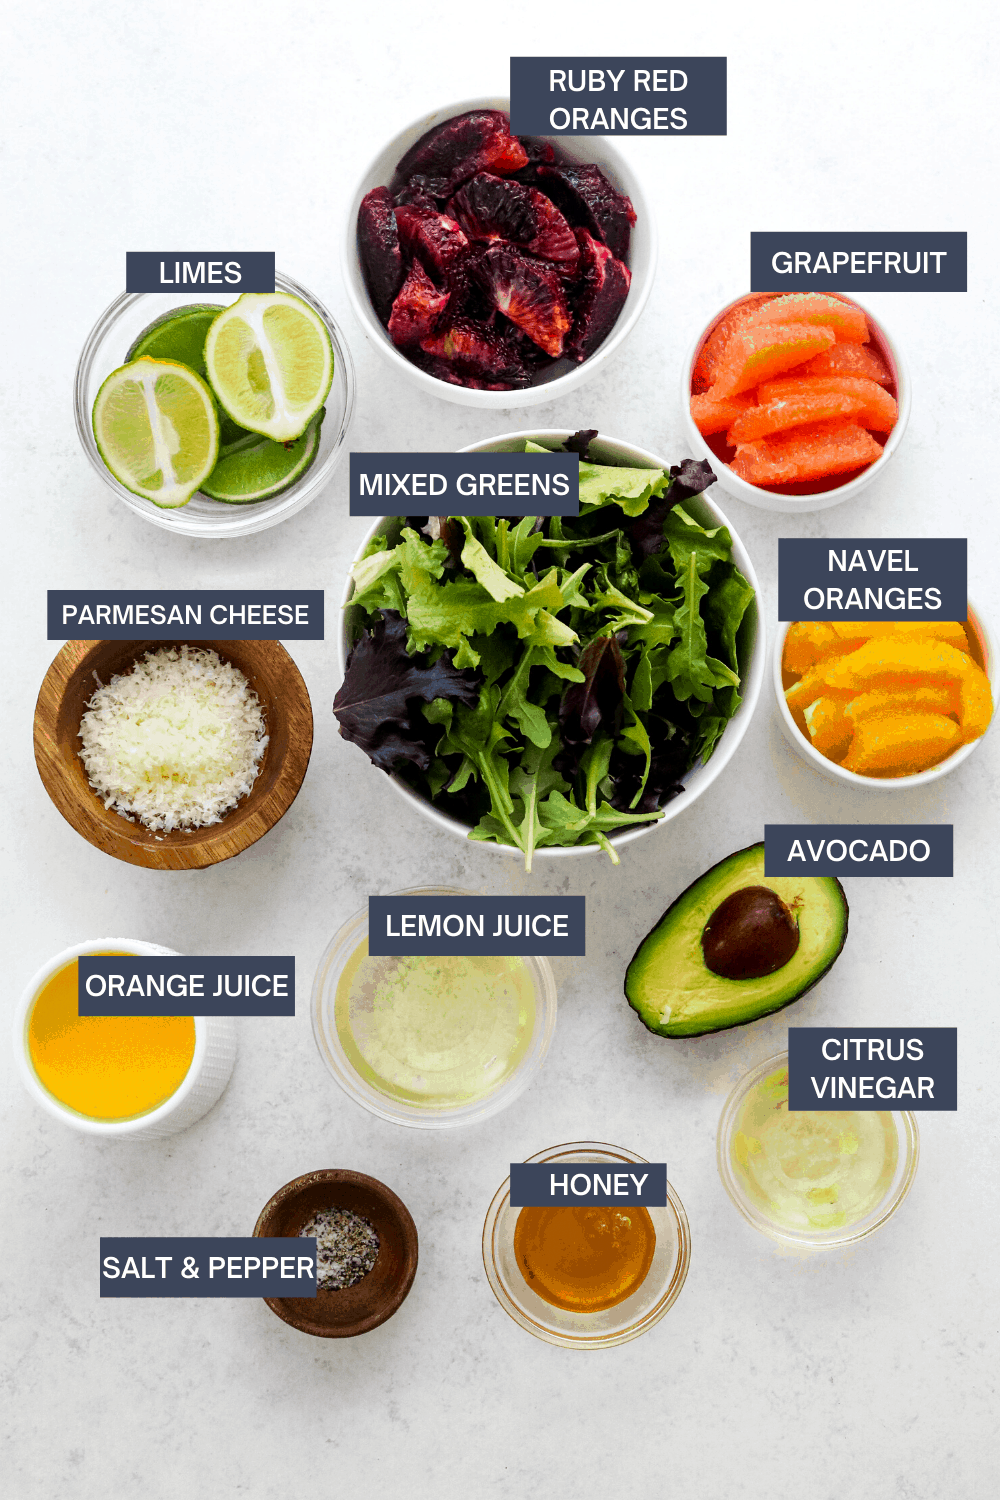 Bow of mixed greens with bowls of segmented oranges and grapefruit around it with shredded parmesan in a bowl, orange juice, bowl of lemon juice, sliced half of an avocado, honey and salt and pepper in front of it.